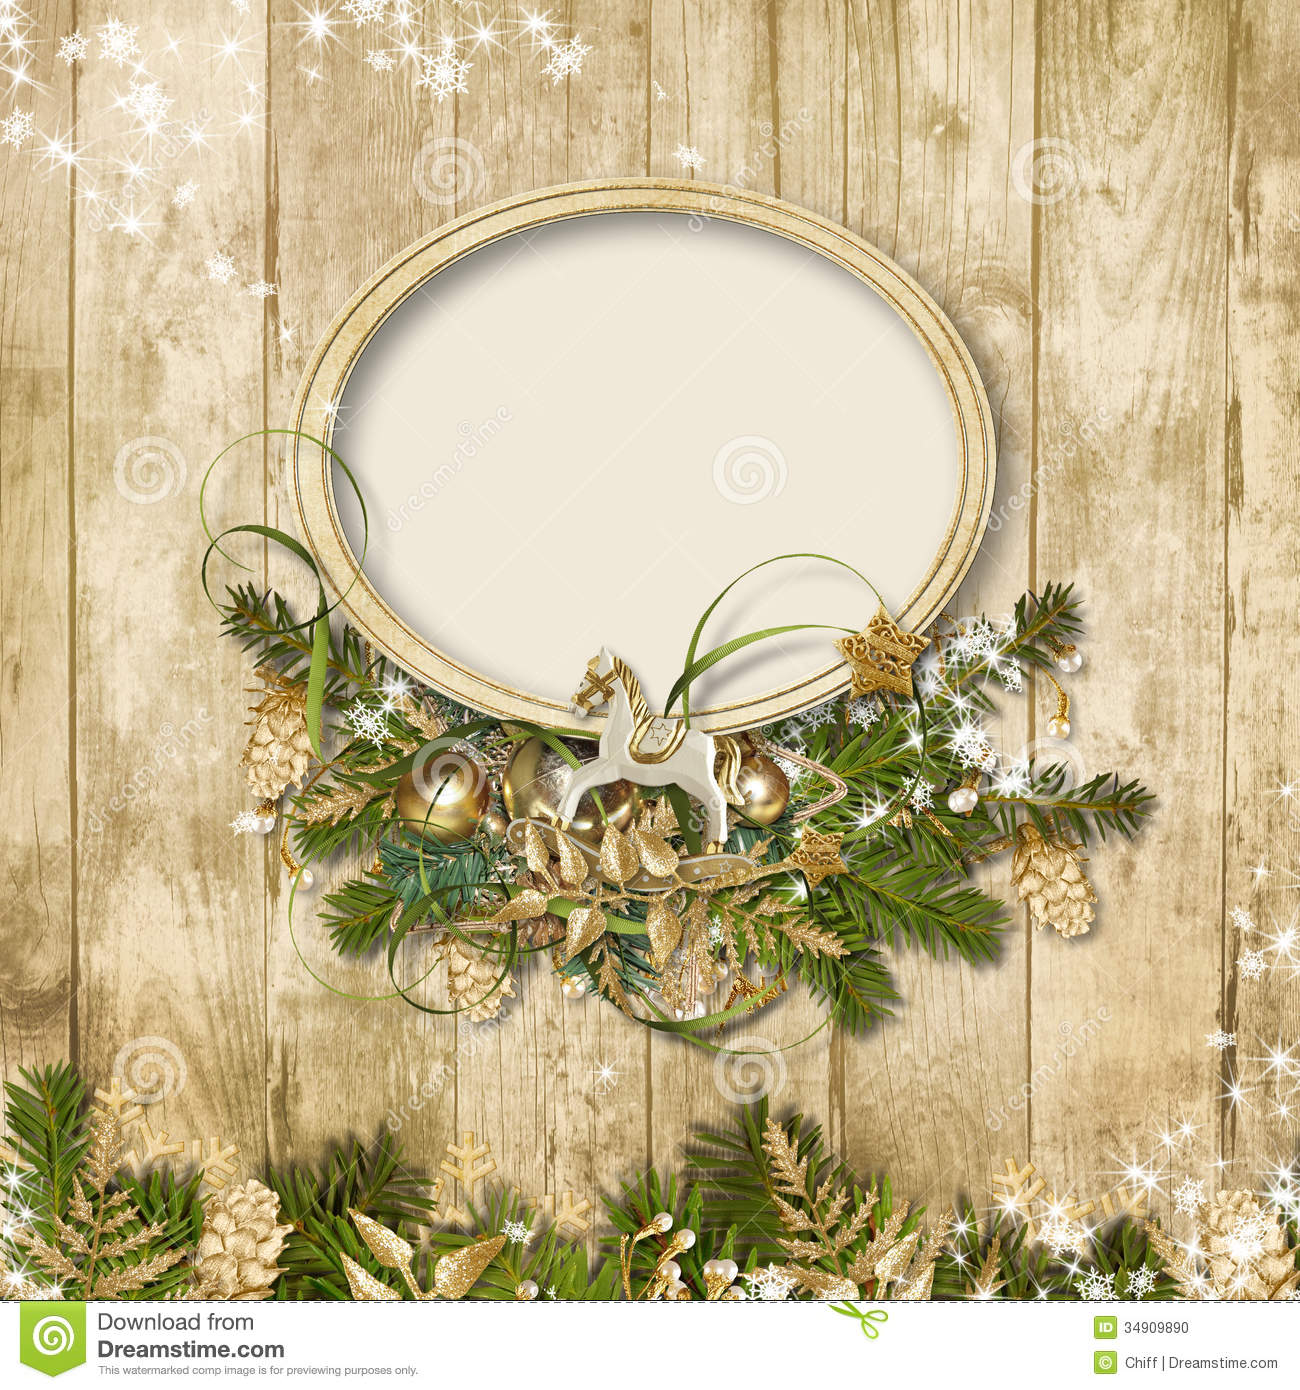 Christmas frame with miraculous garland on a wooden